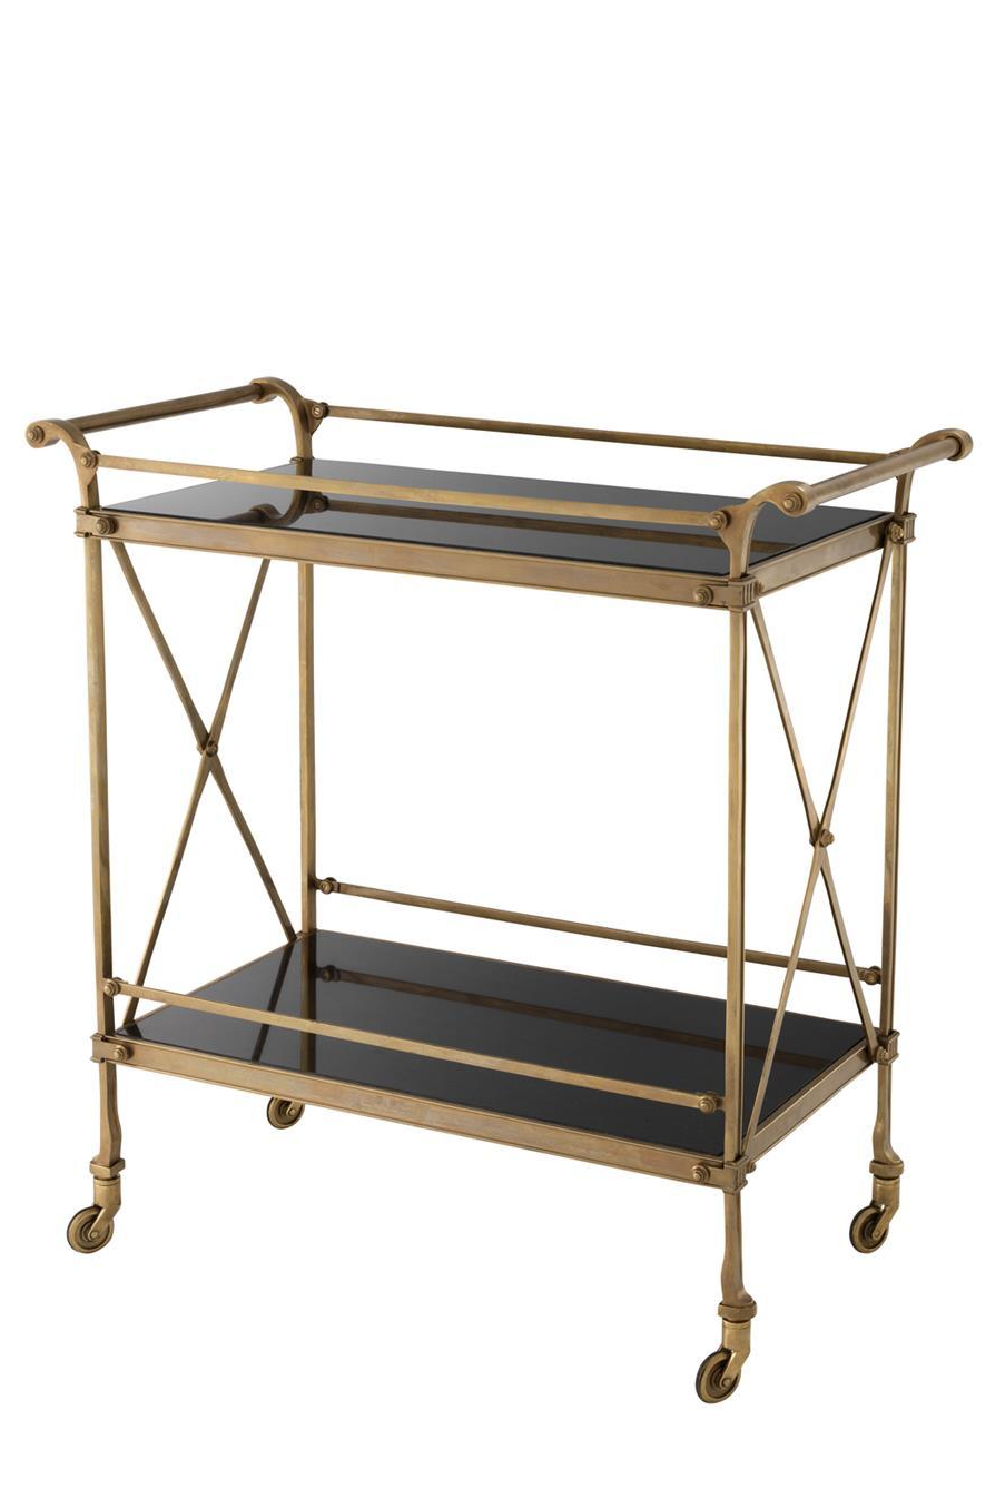 Antique Brass Bar Cart | Eichholtz Aura | #1 Eichholtz Retailer